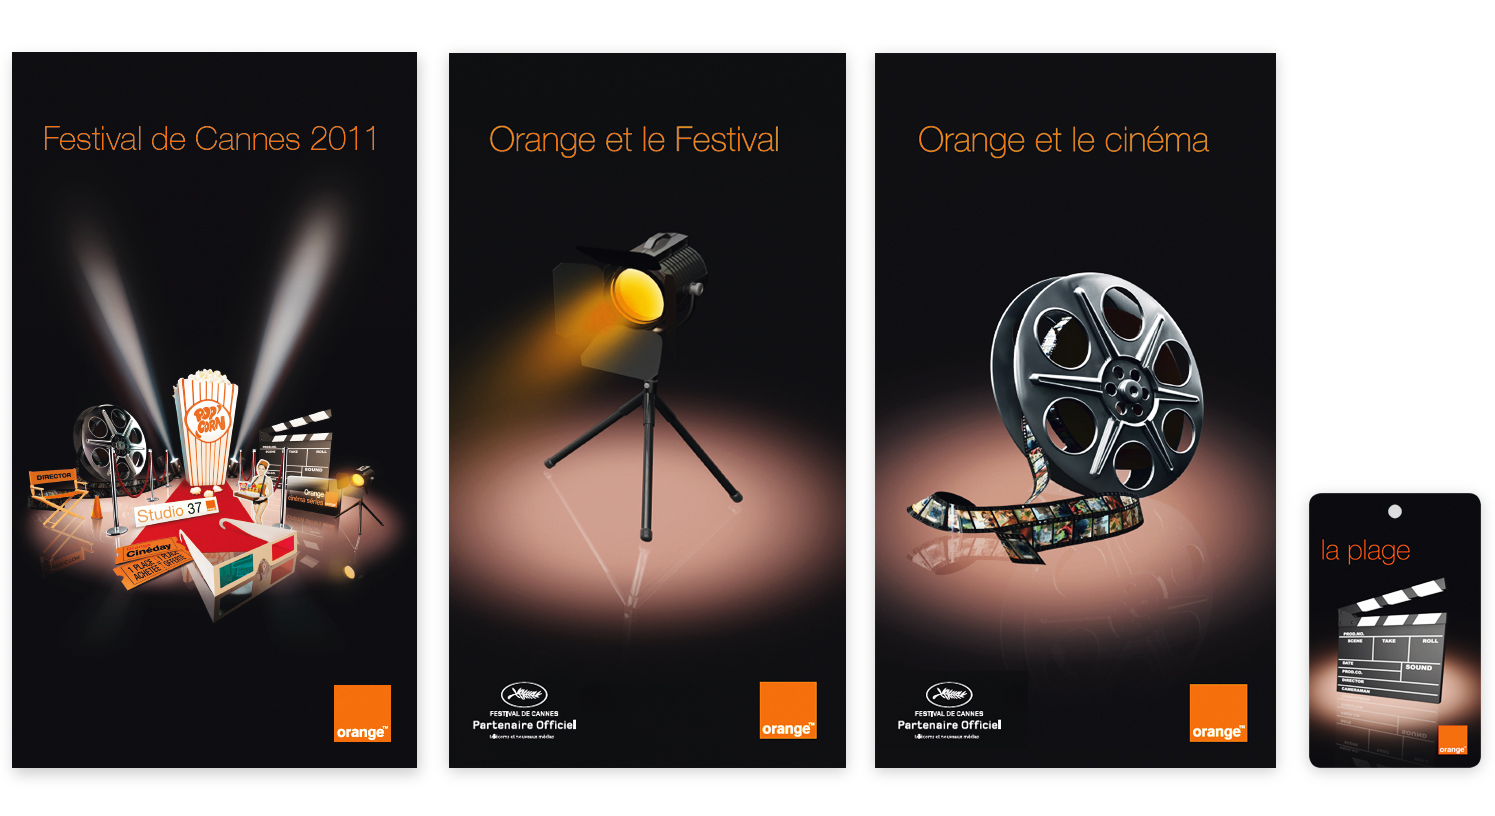 orange festival de cannes agence punk. Black Bedroom Furniture Sets. Home Design Ideas